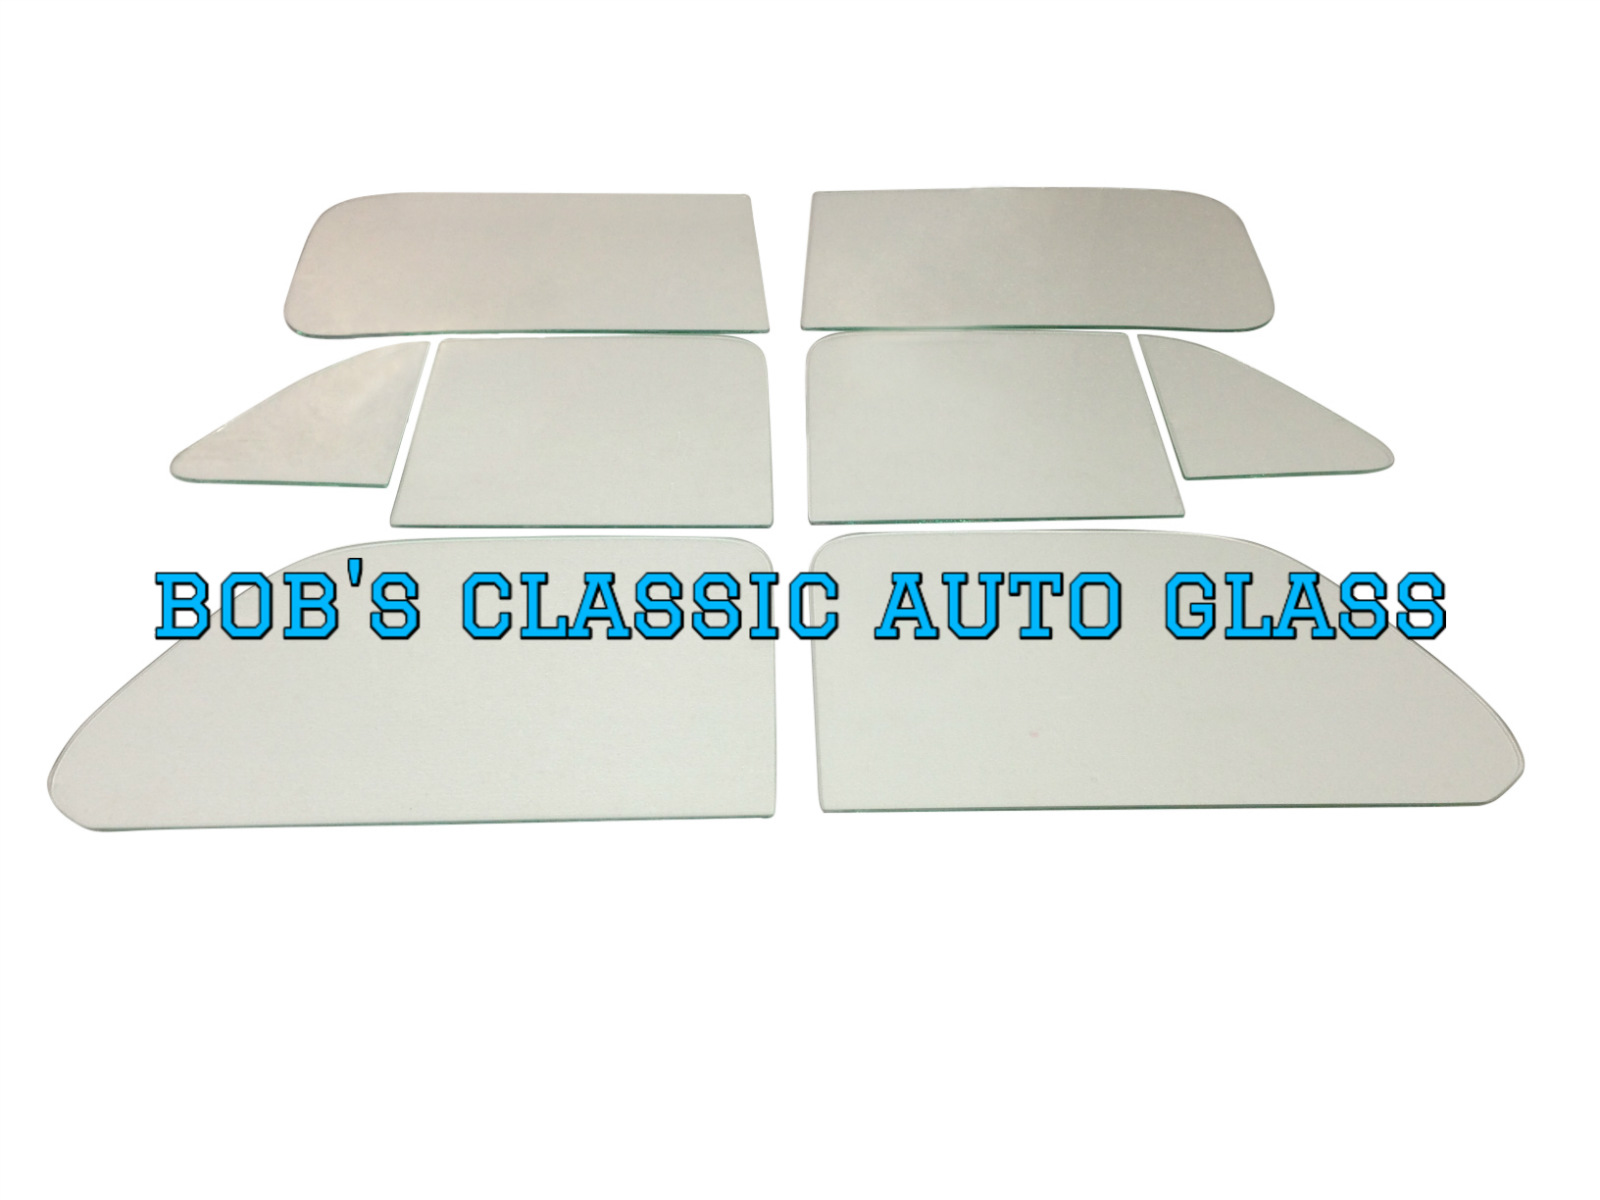 1941 Desoto Deluxe 2 Door Sedan Auto Glass Kit NEW